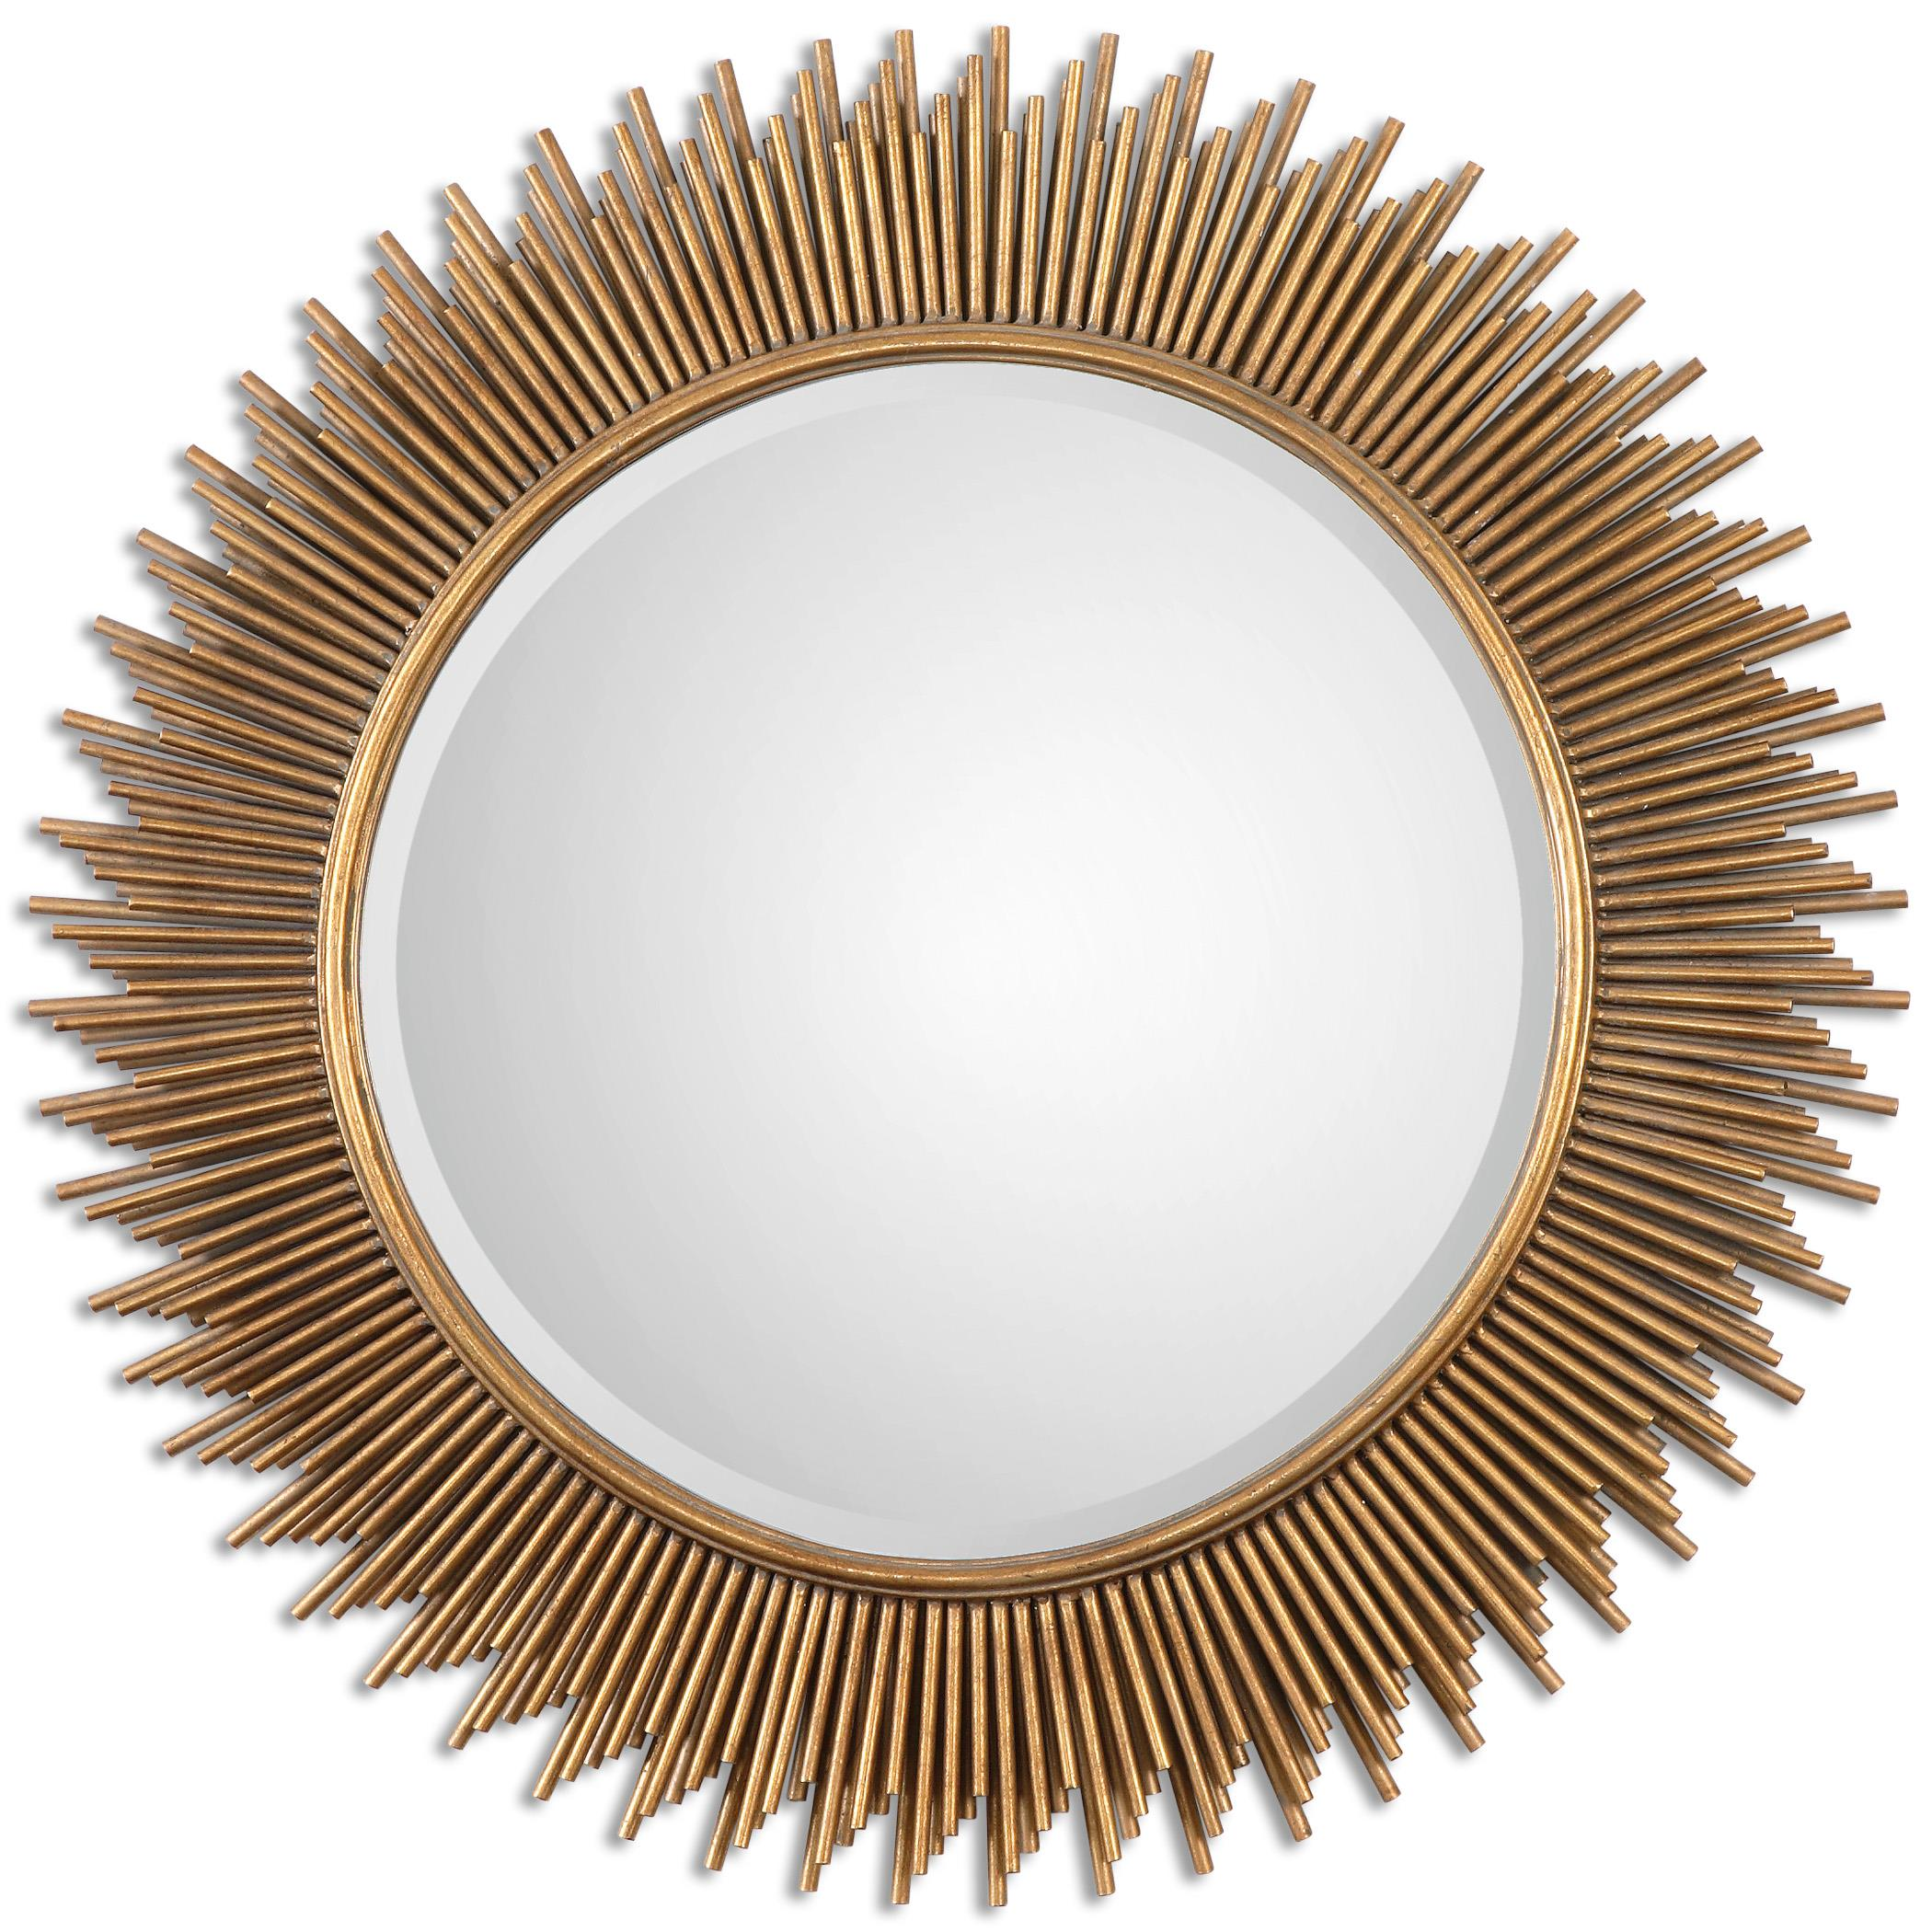 Uttermost Mirrors Marlo Round Gold Mirror - Item Number: 08137